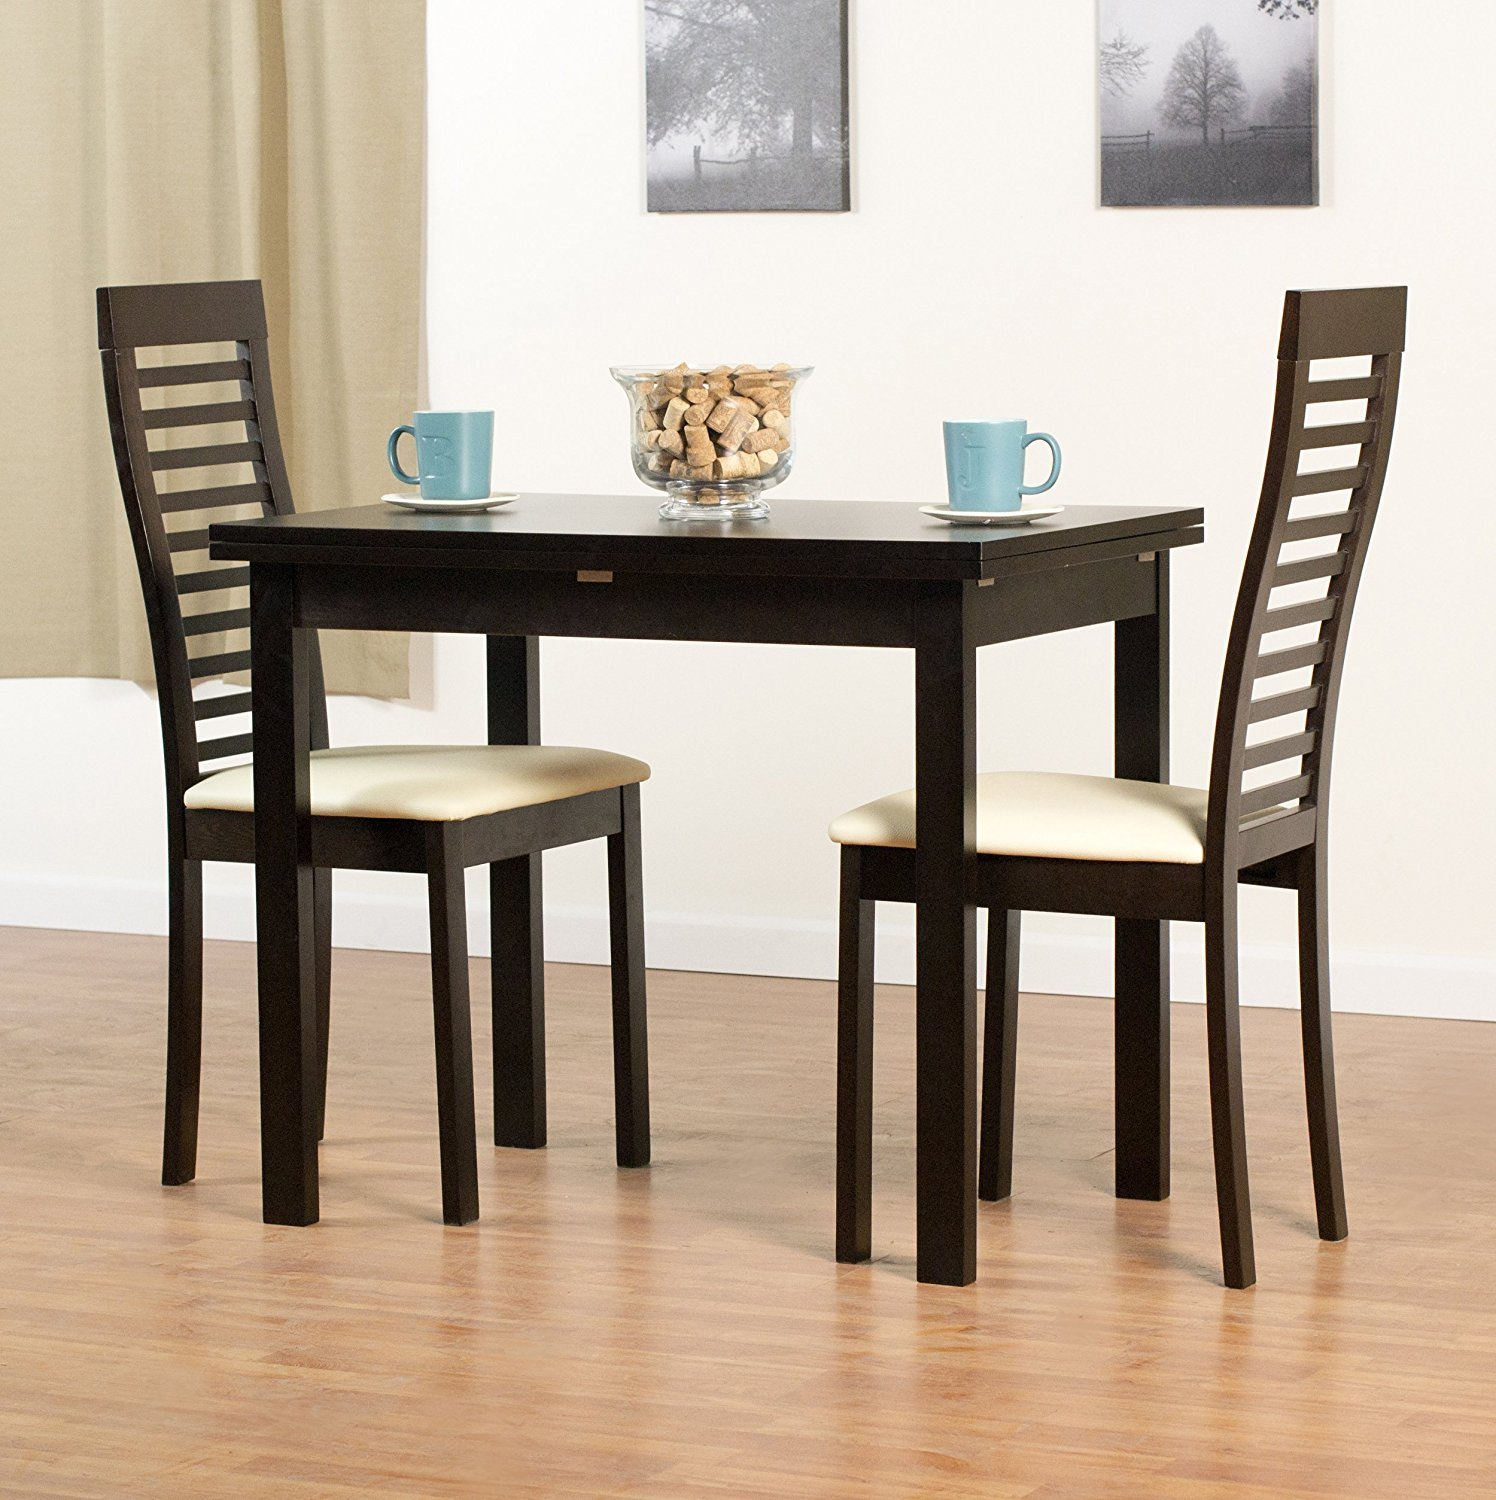 AEON Flex Beechwood Table,Flip Extension, Coffee Finish